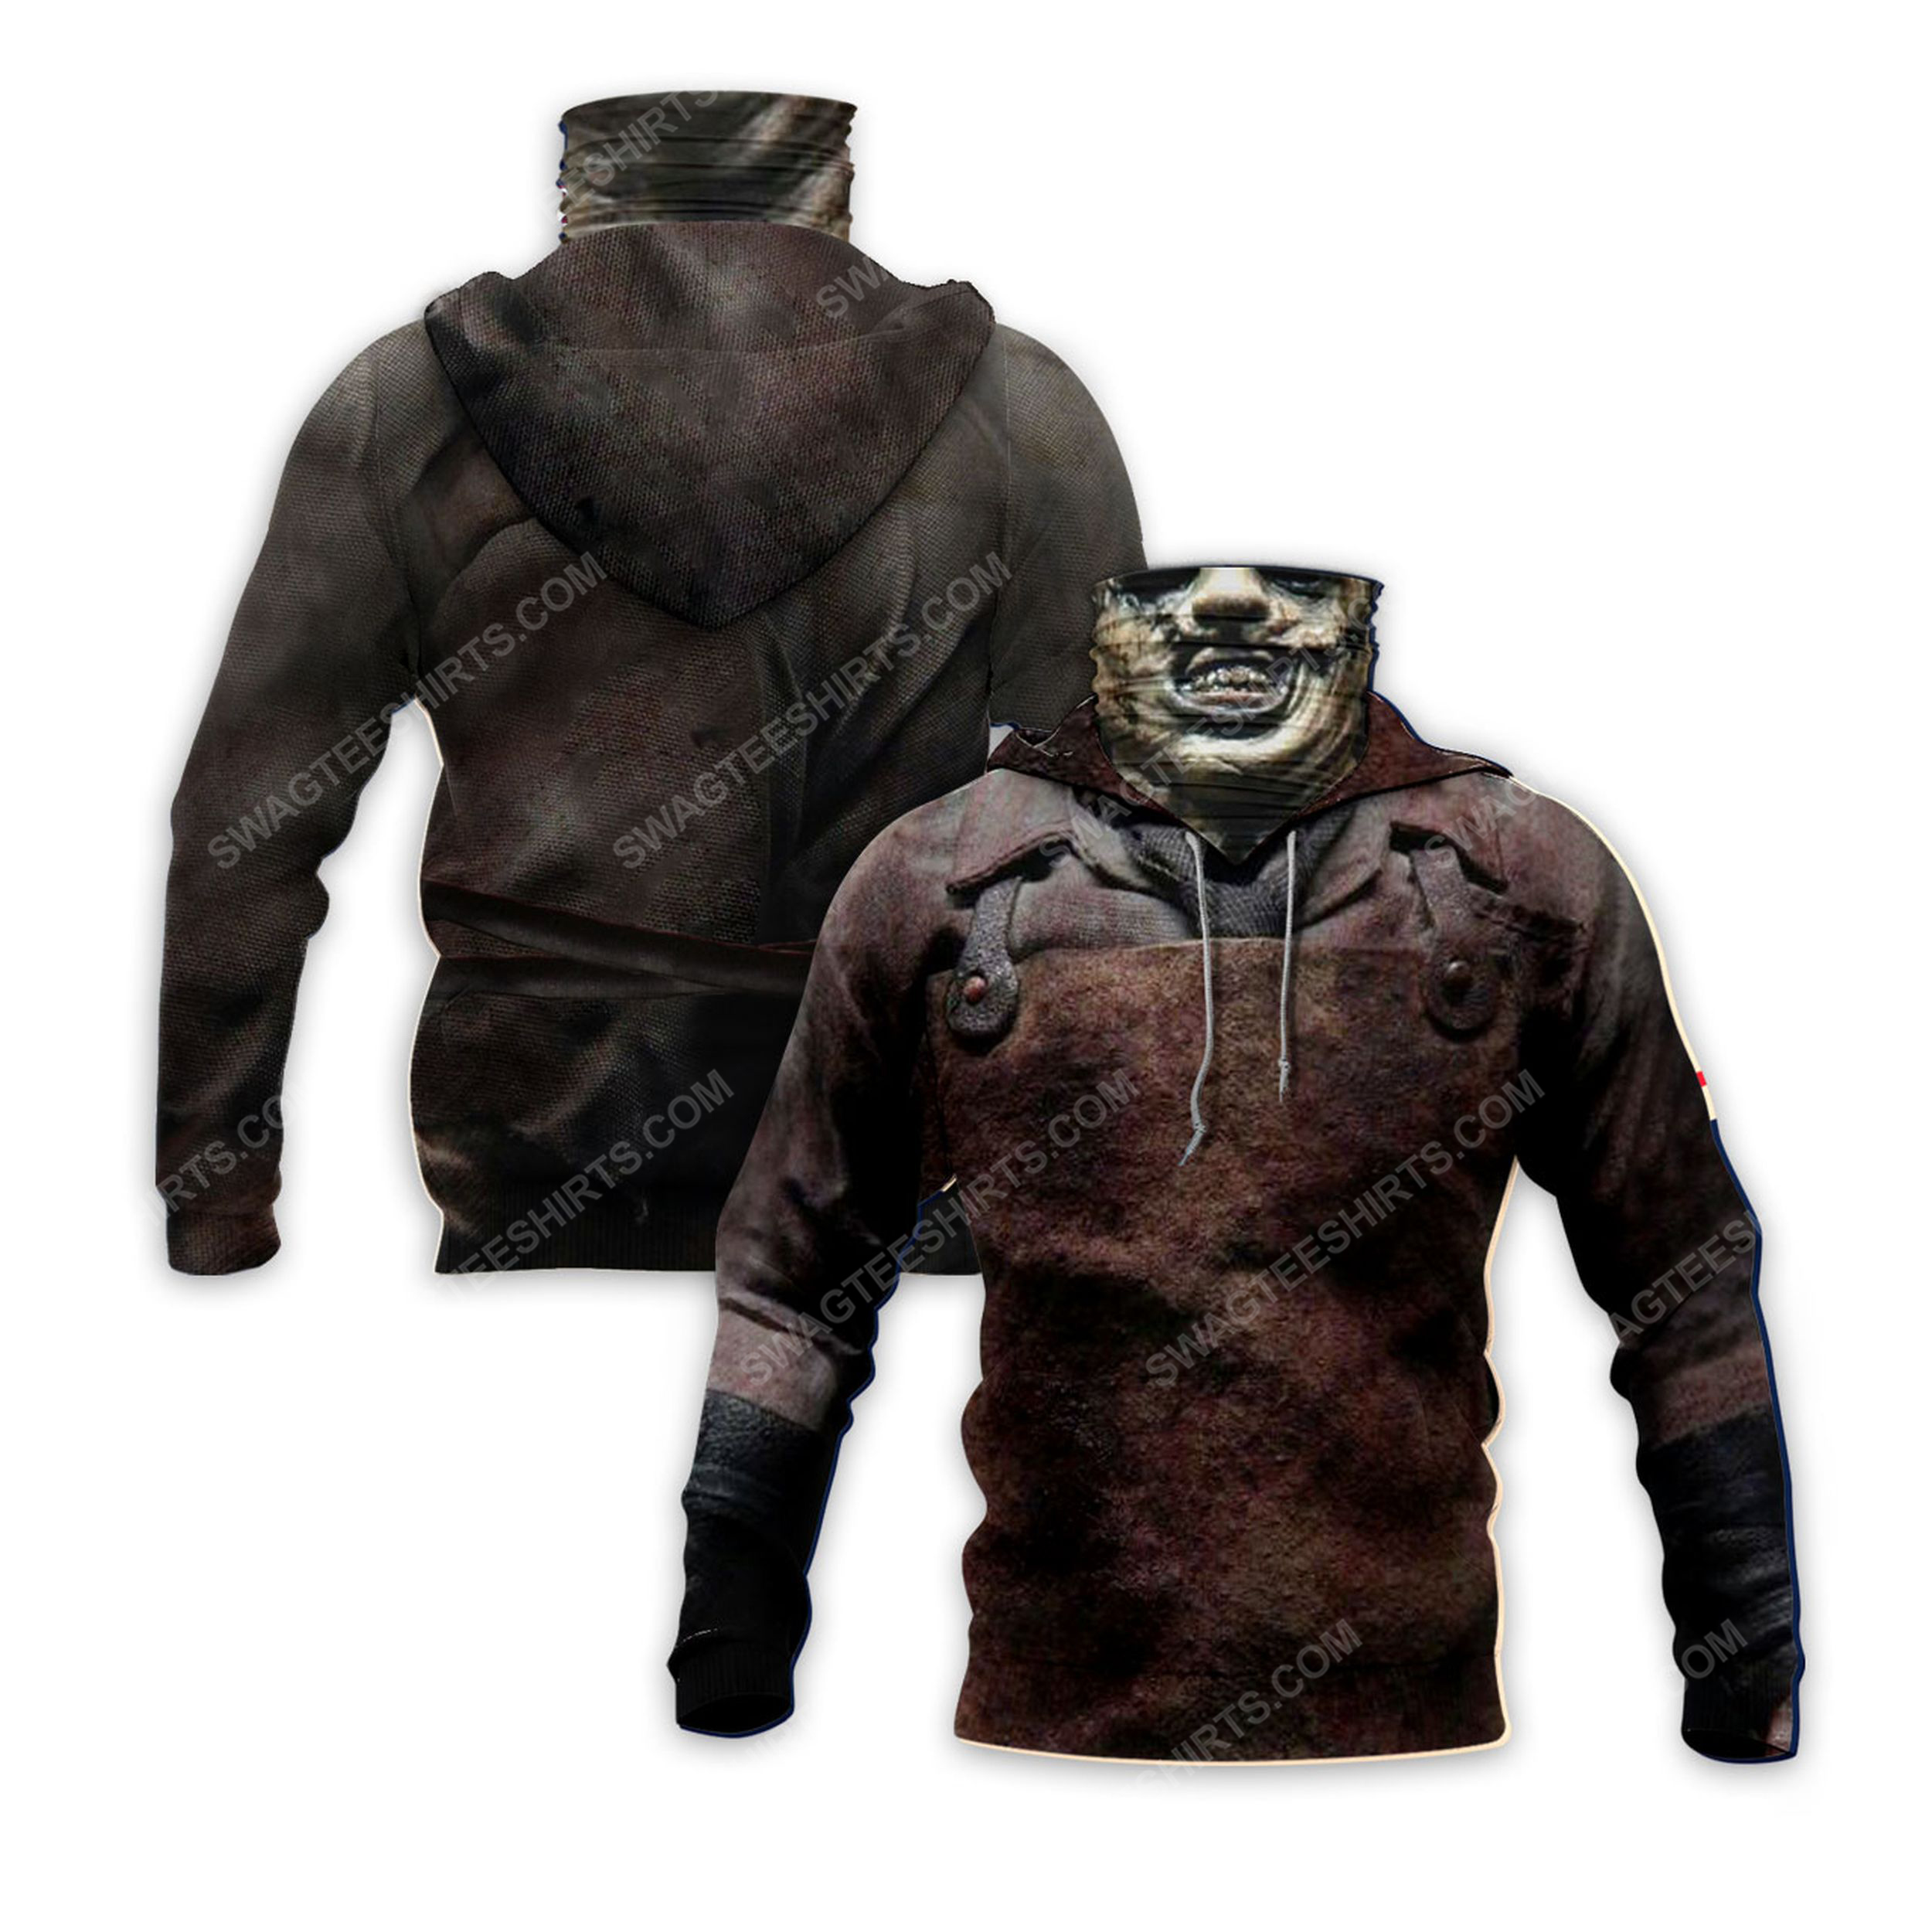 Leatherface the texas chain saw massacre for halloween full print mask hoodie 2(1)